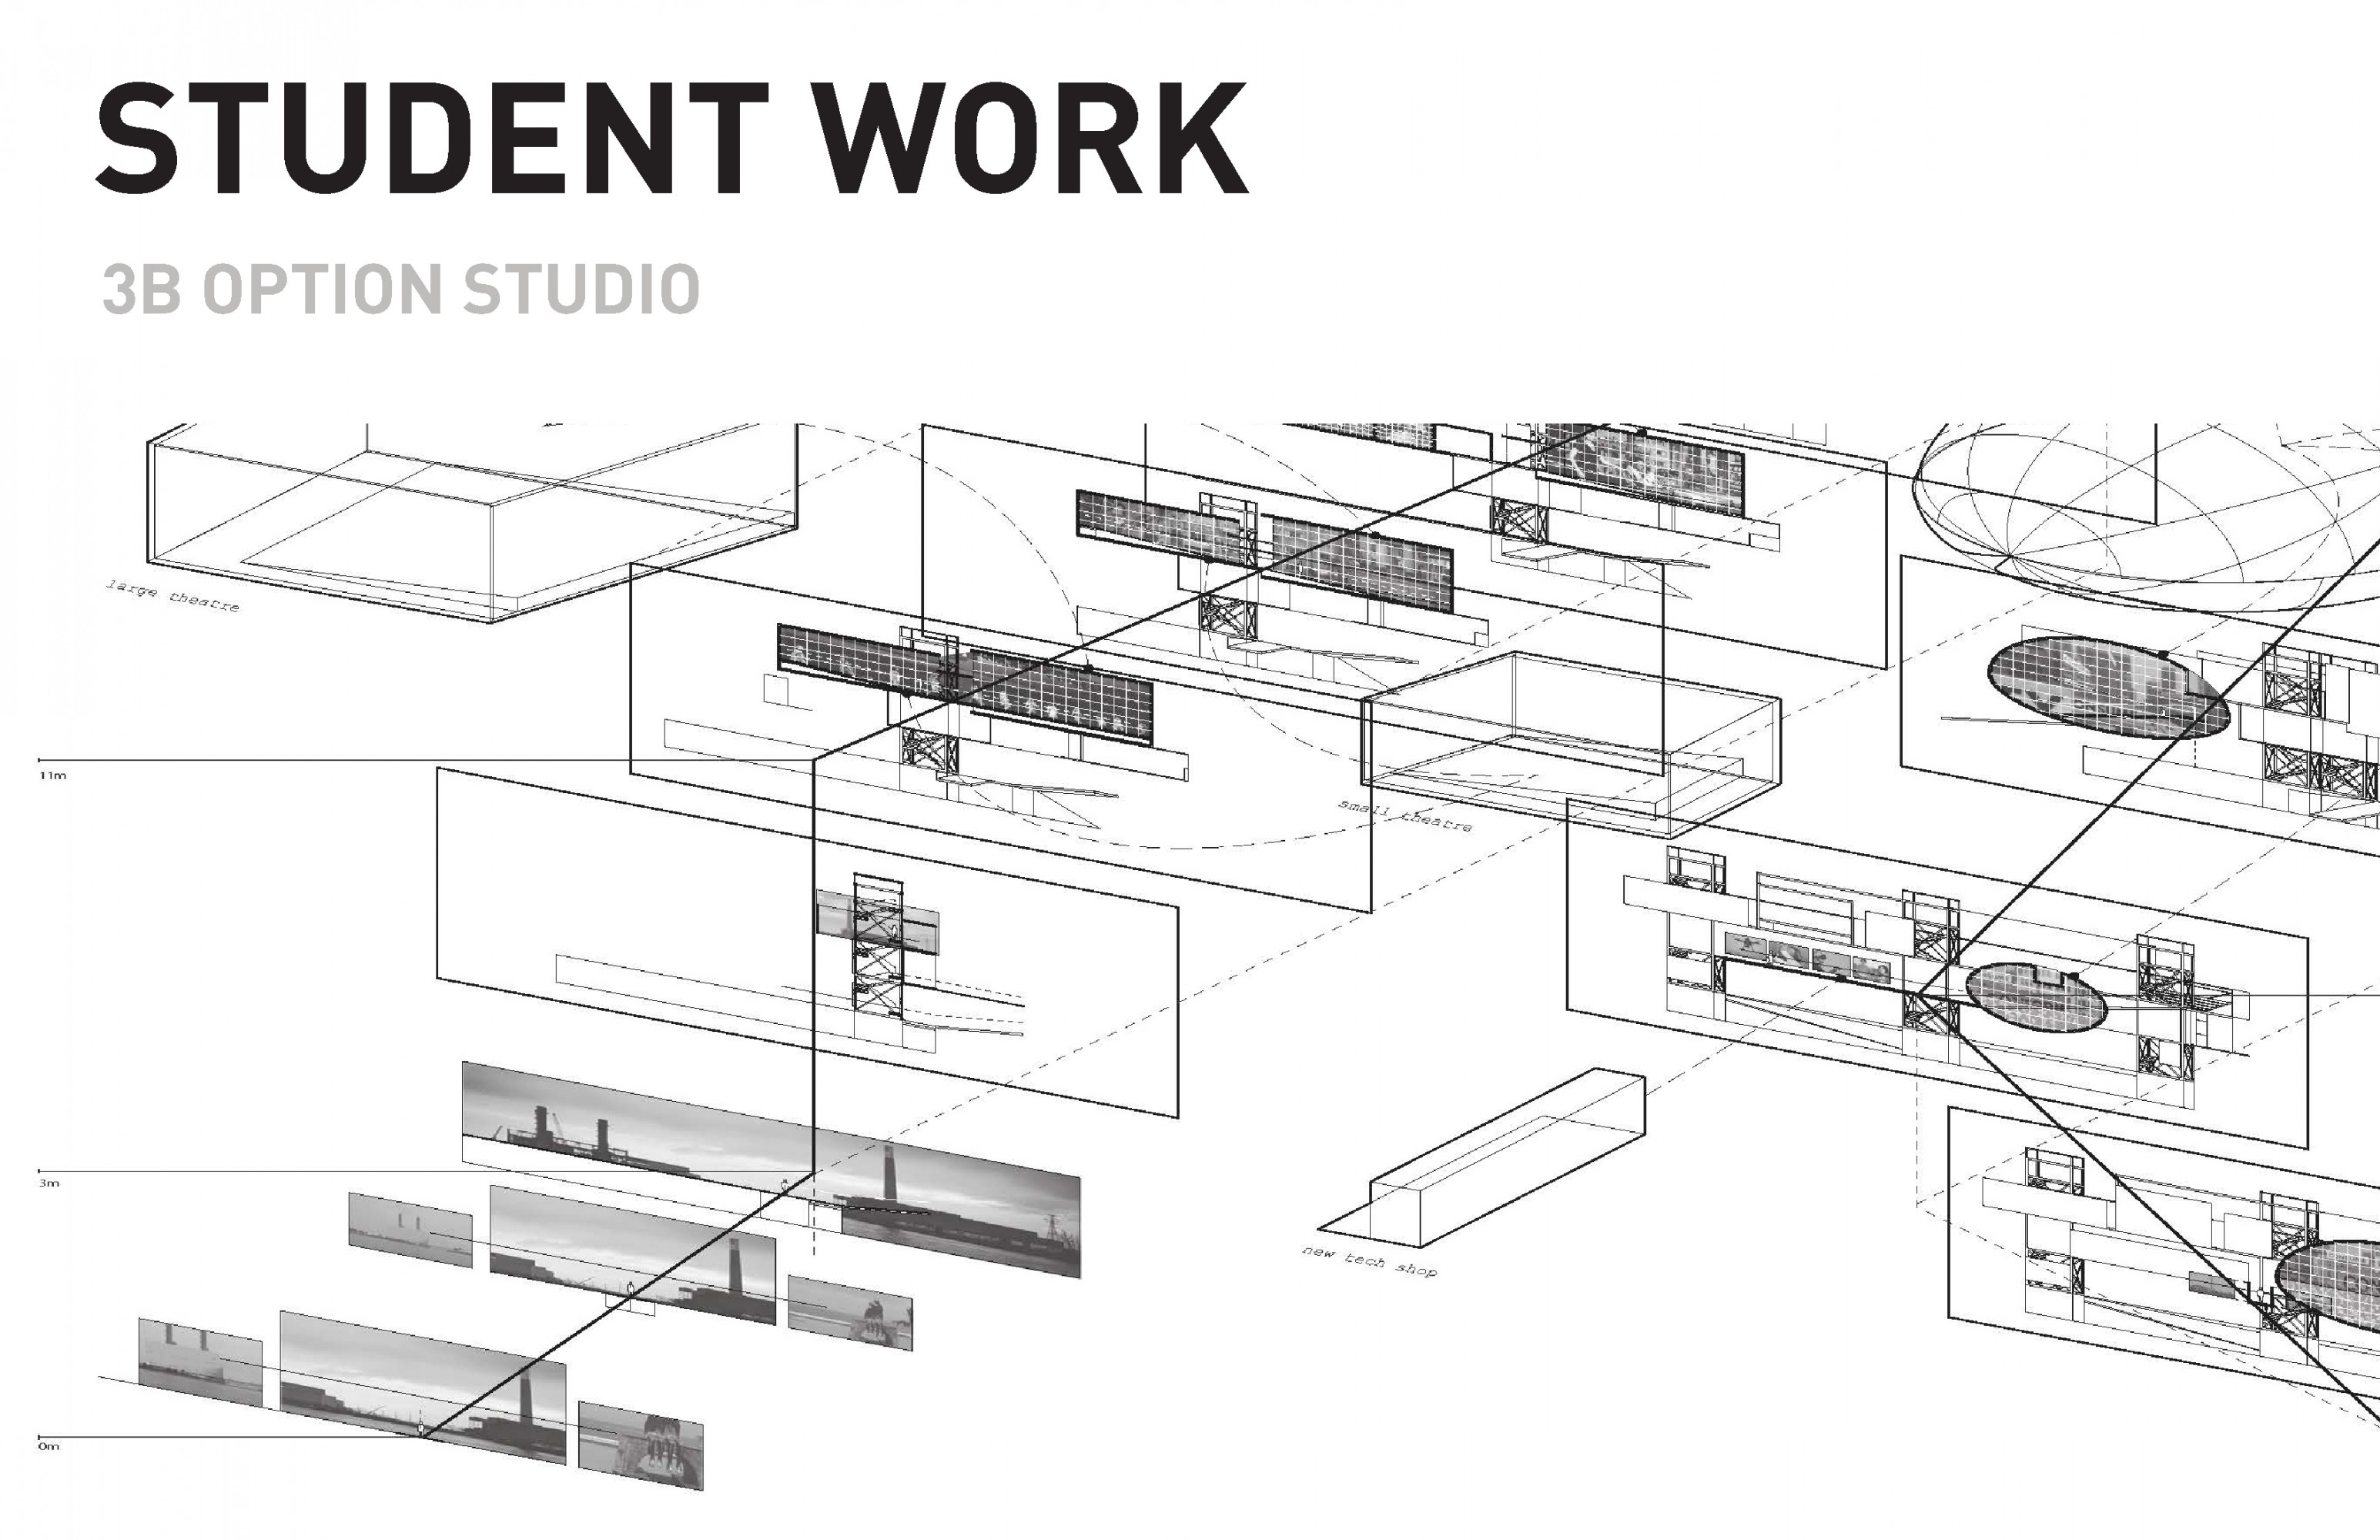 STUDENT WORK / Effects Factory / 3B Option Studio